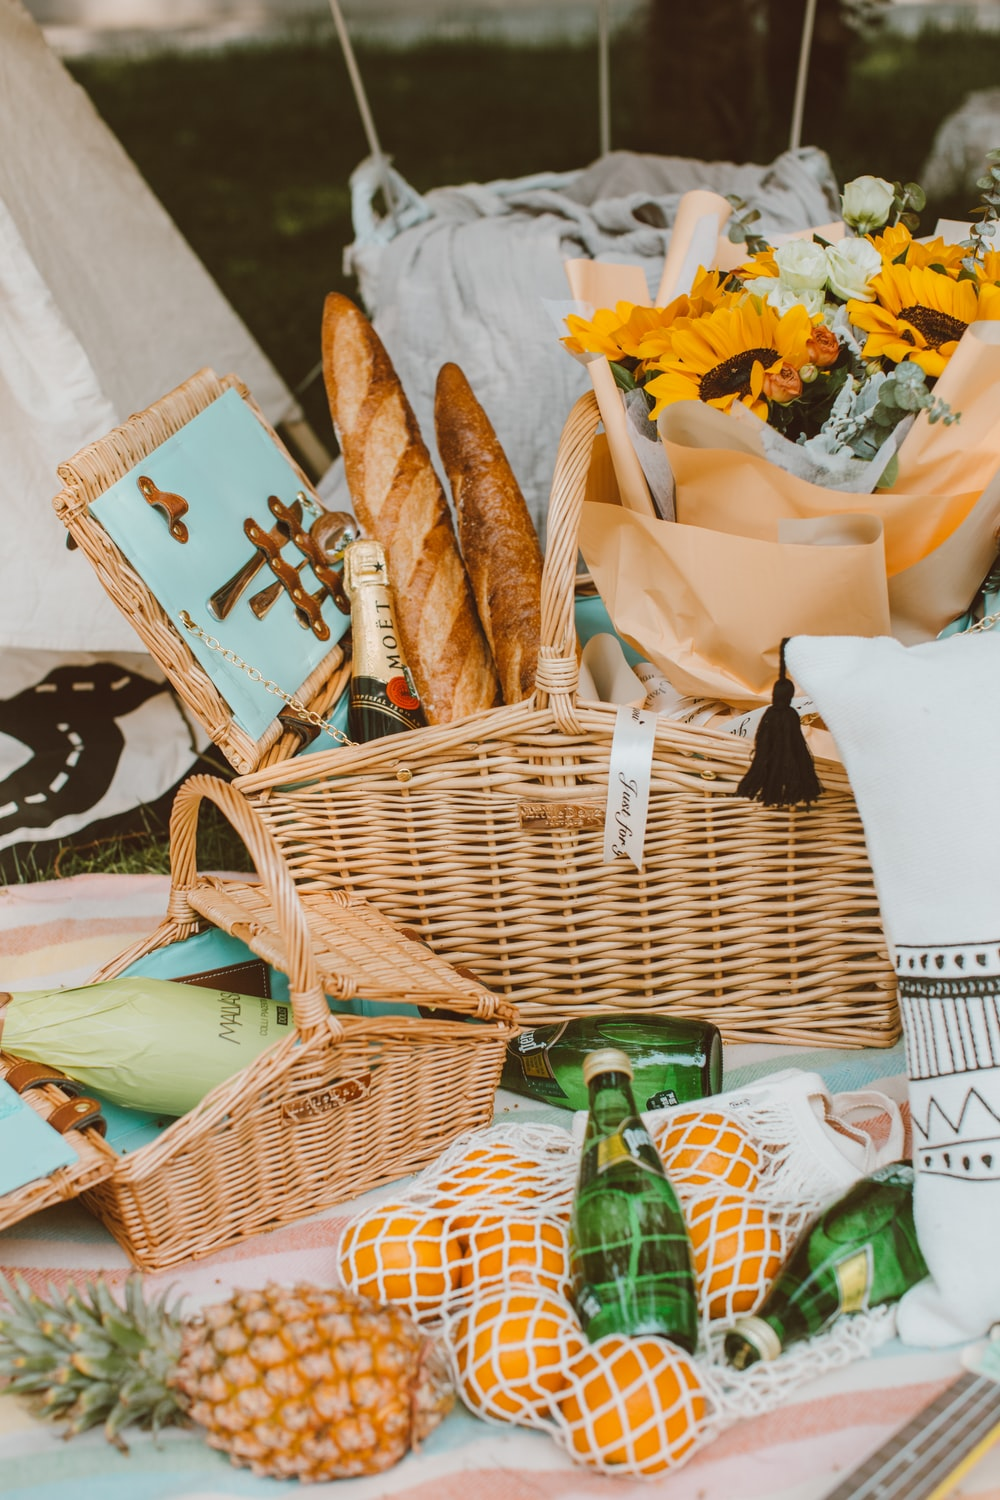 brown wicker basket with white and yellow flowers